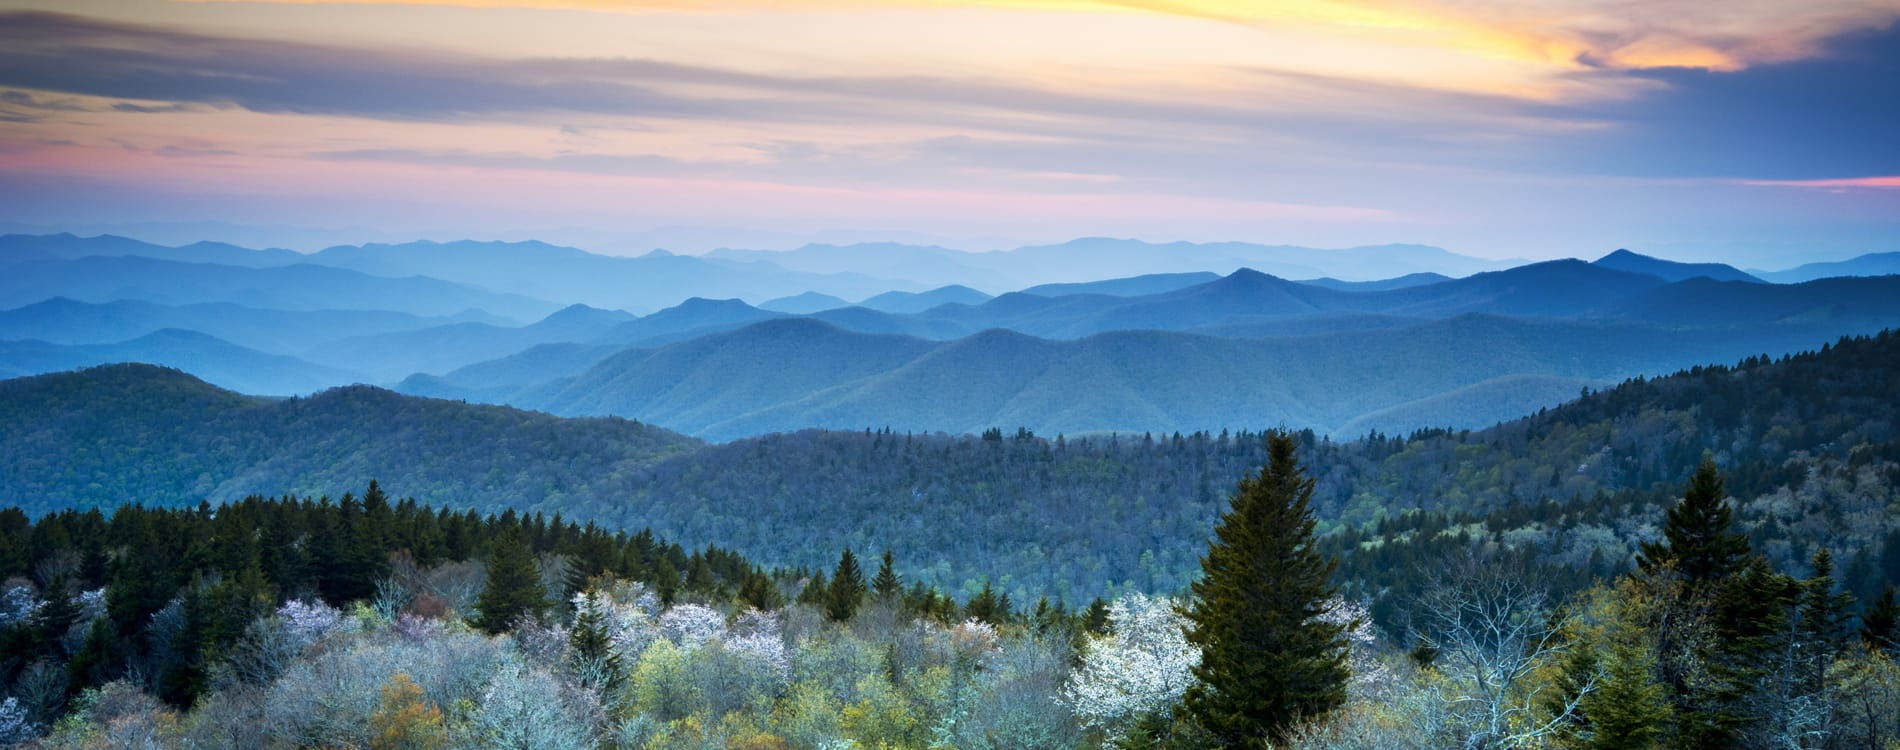 Asheville, NC - Scenic Blue Ridge Parkway in the Appalachians